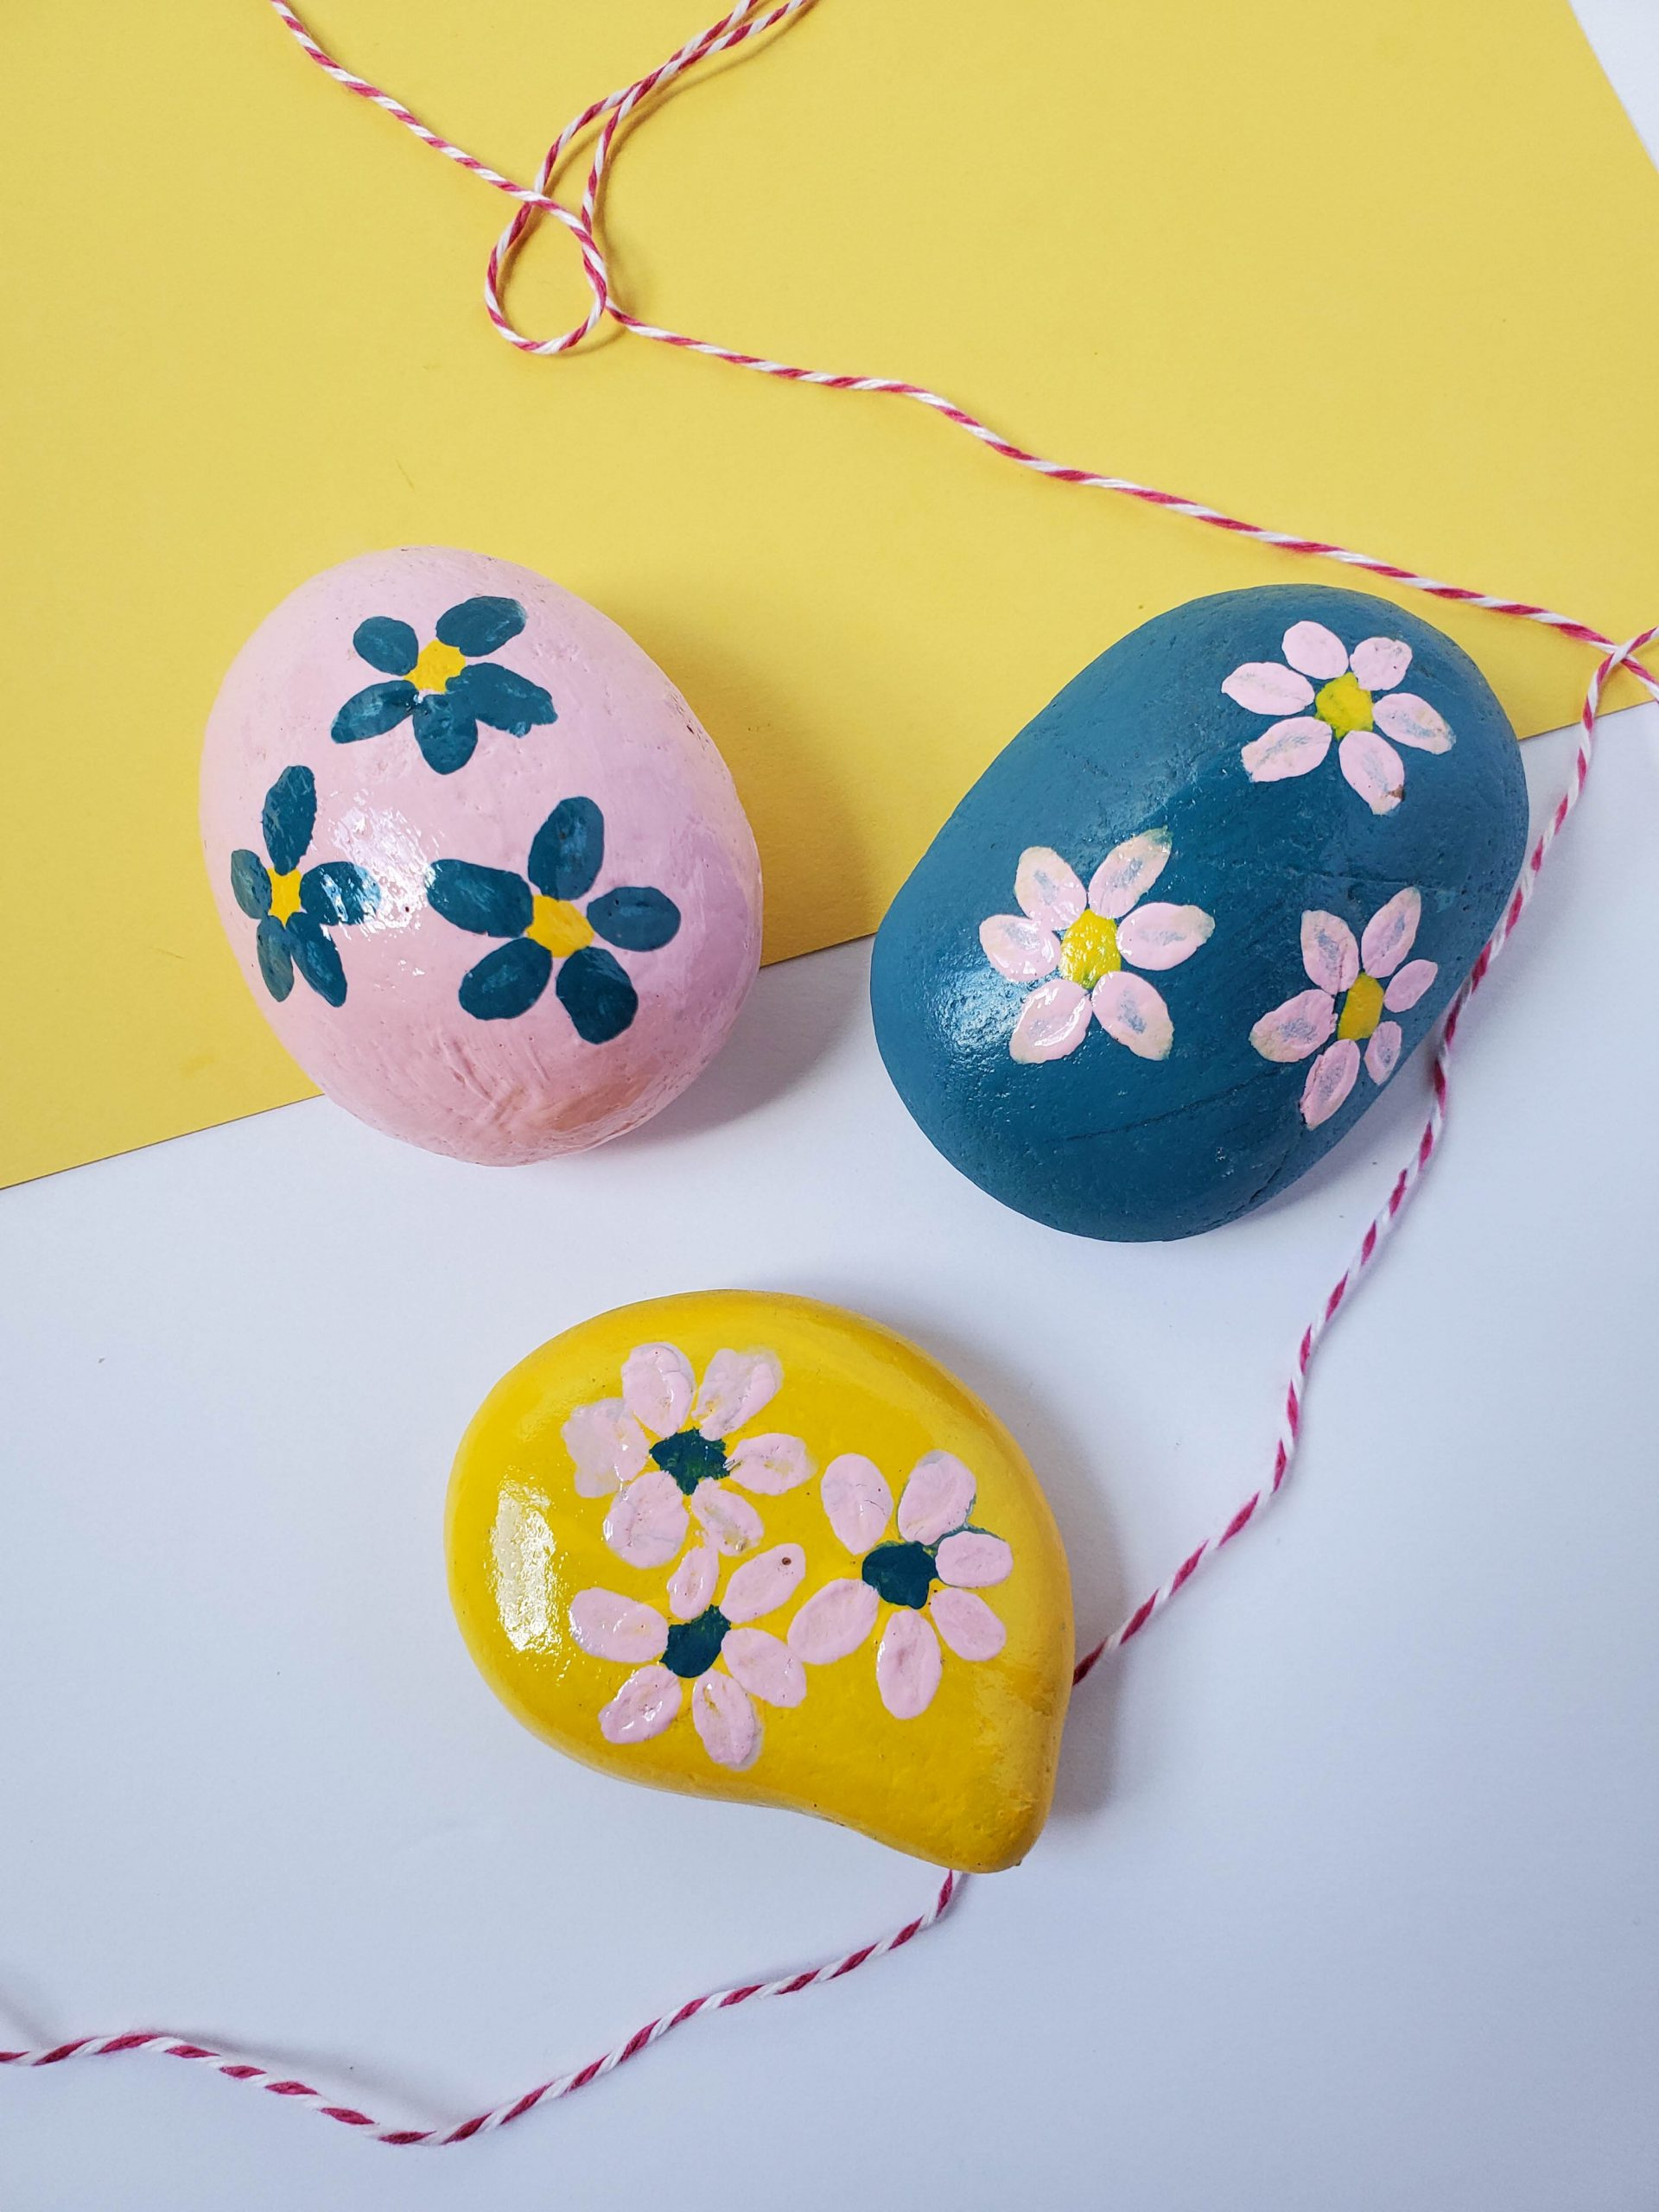 The painted rocks with a piece of striped string.